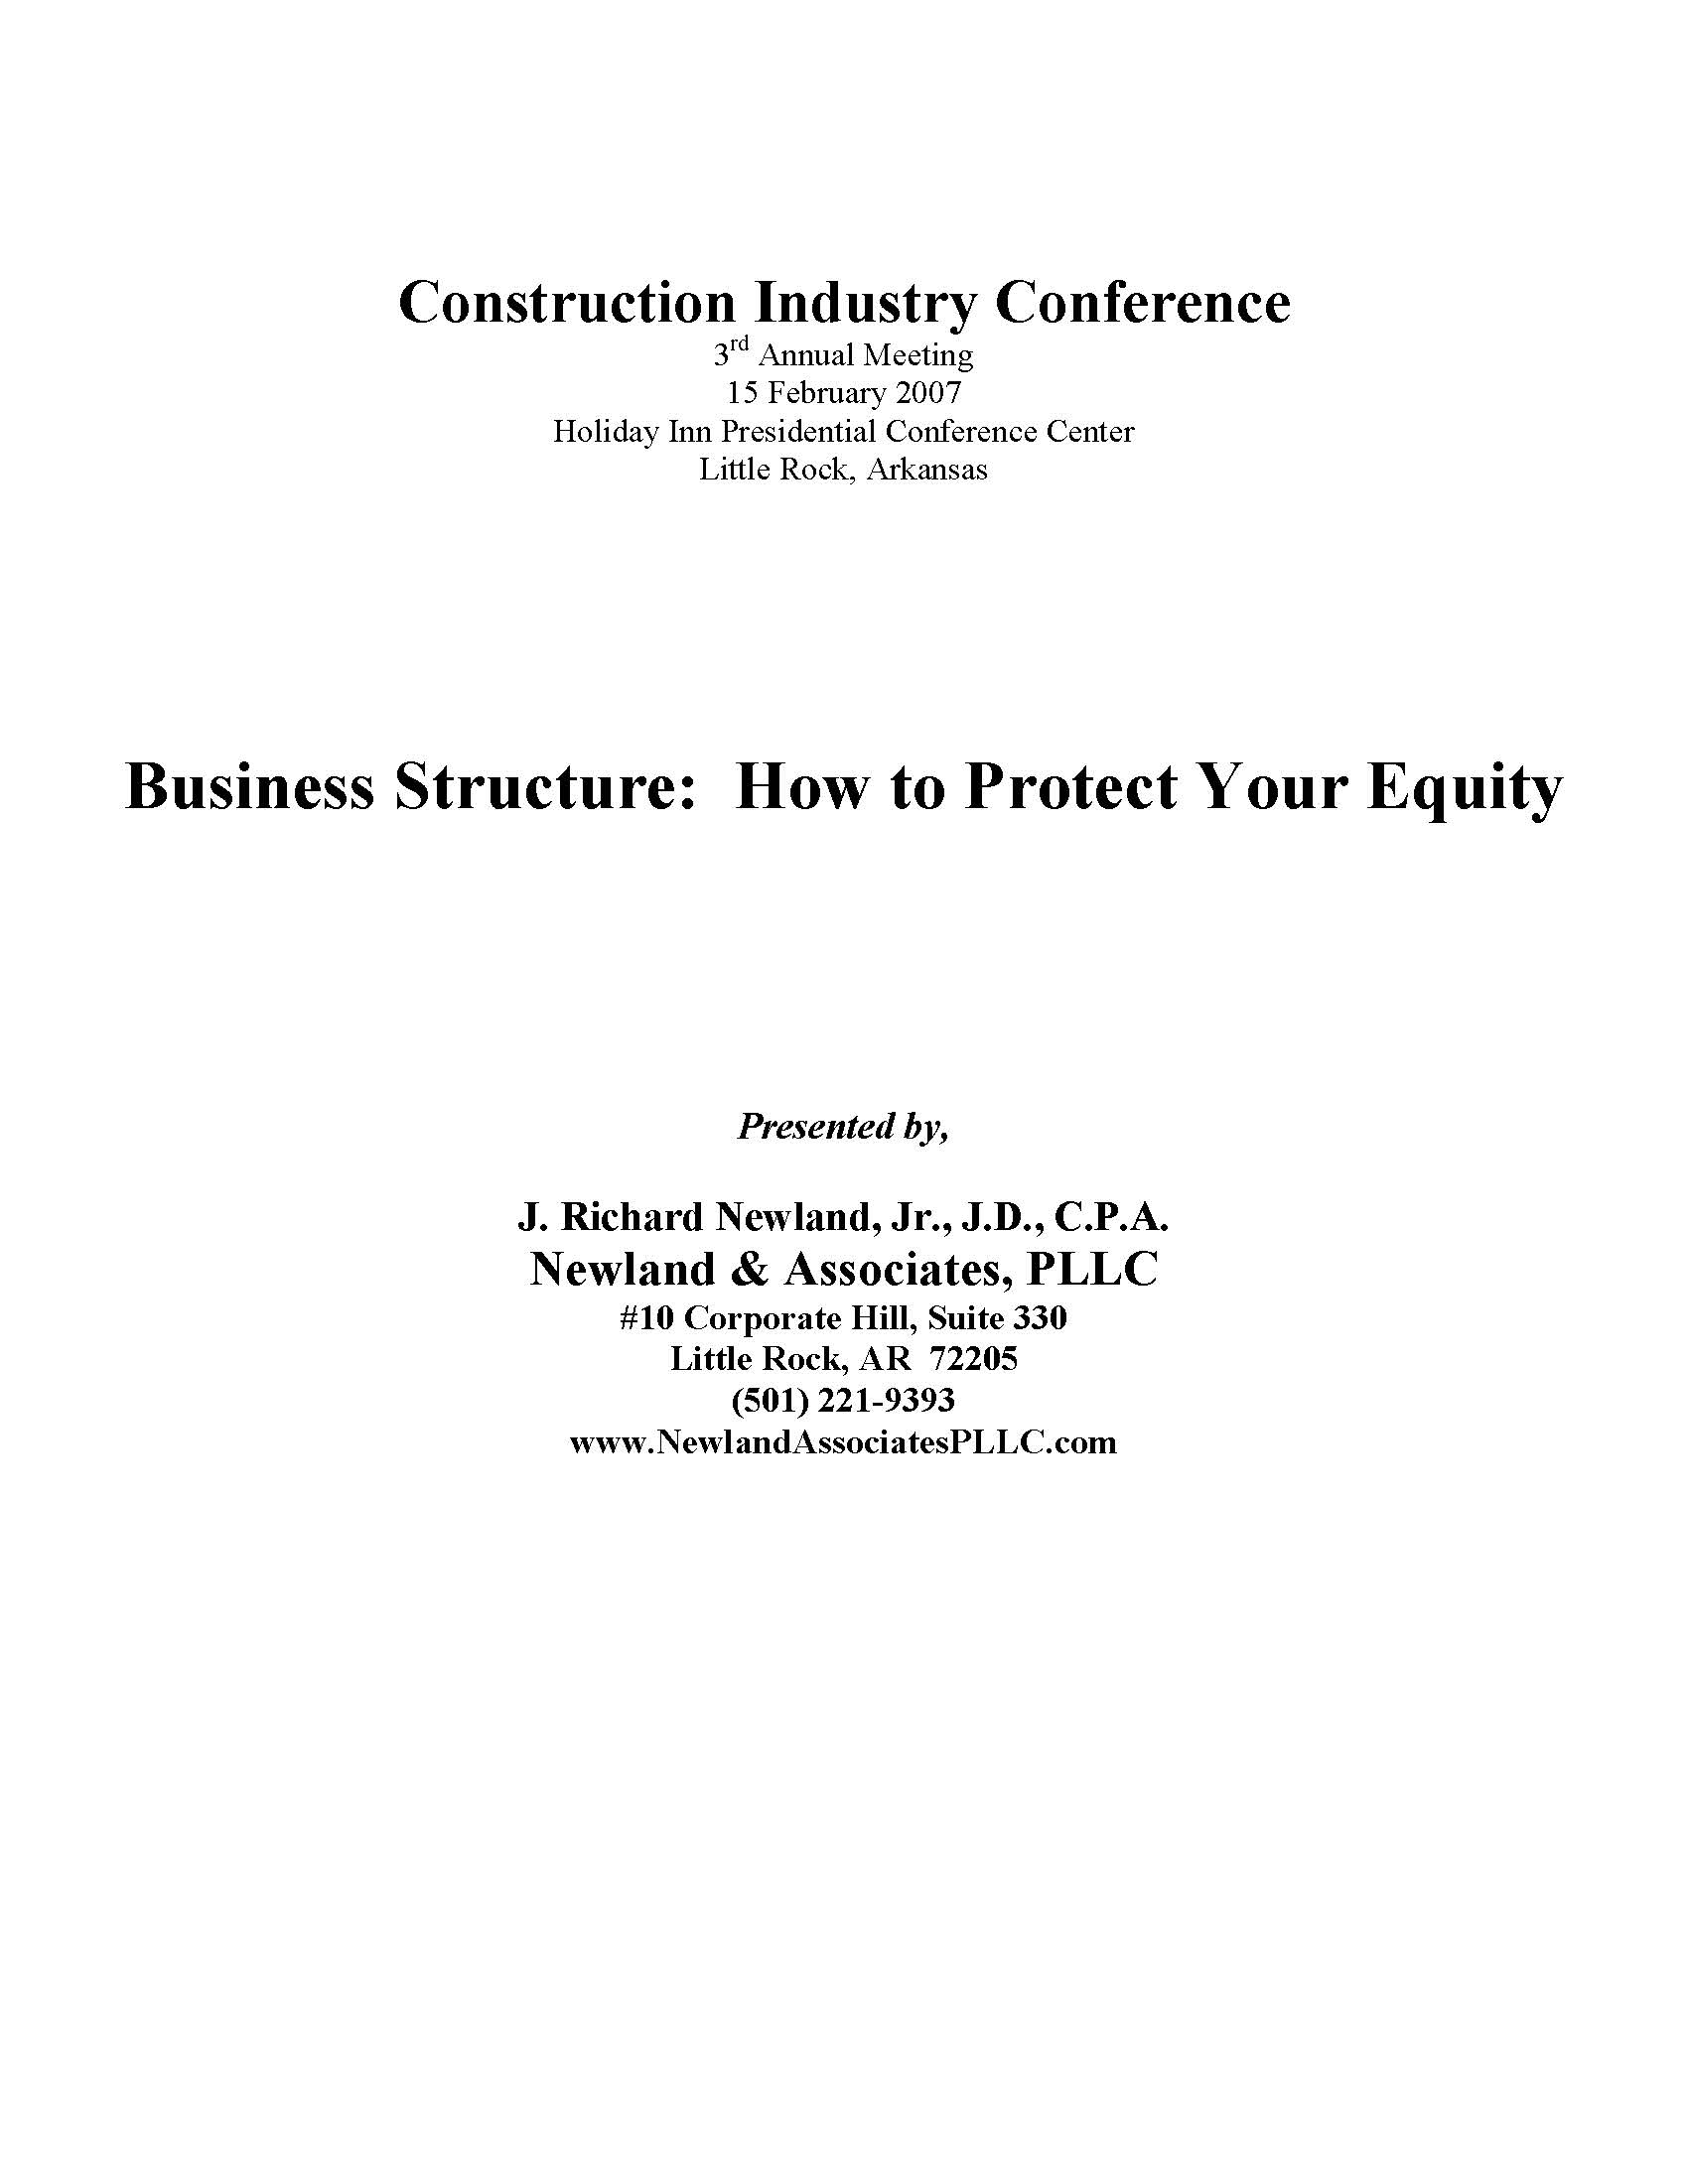 construction-business-structure-how-to-protect-your-equity_Page_01.jpg